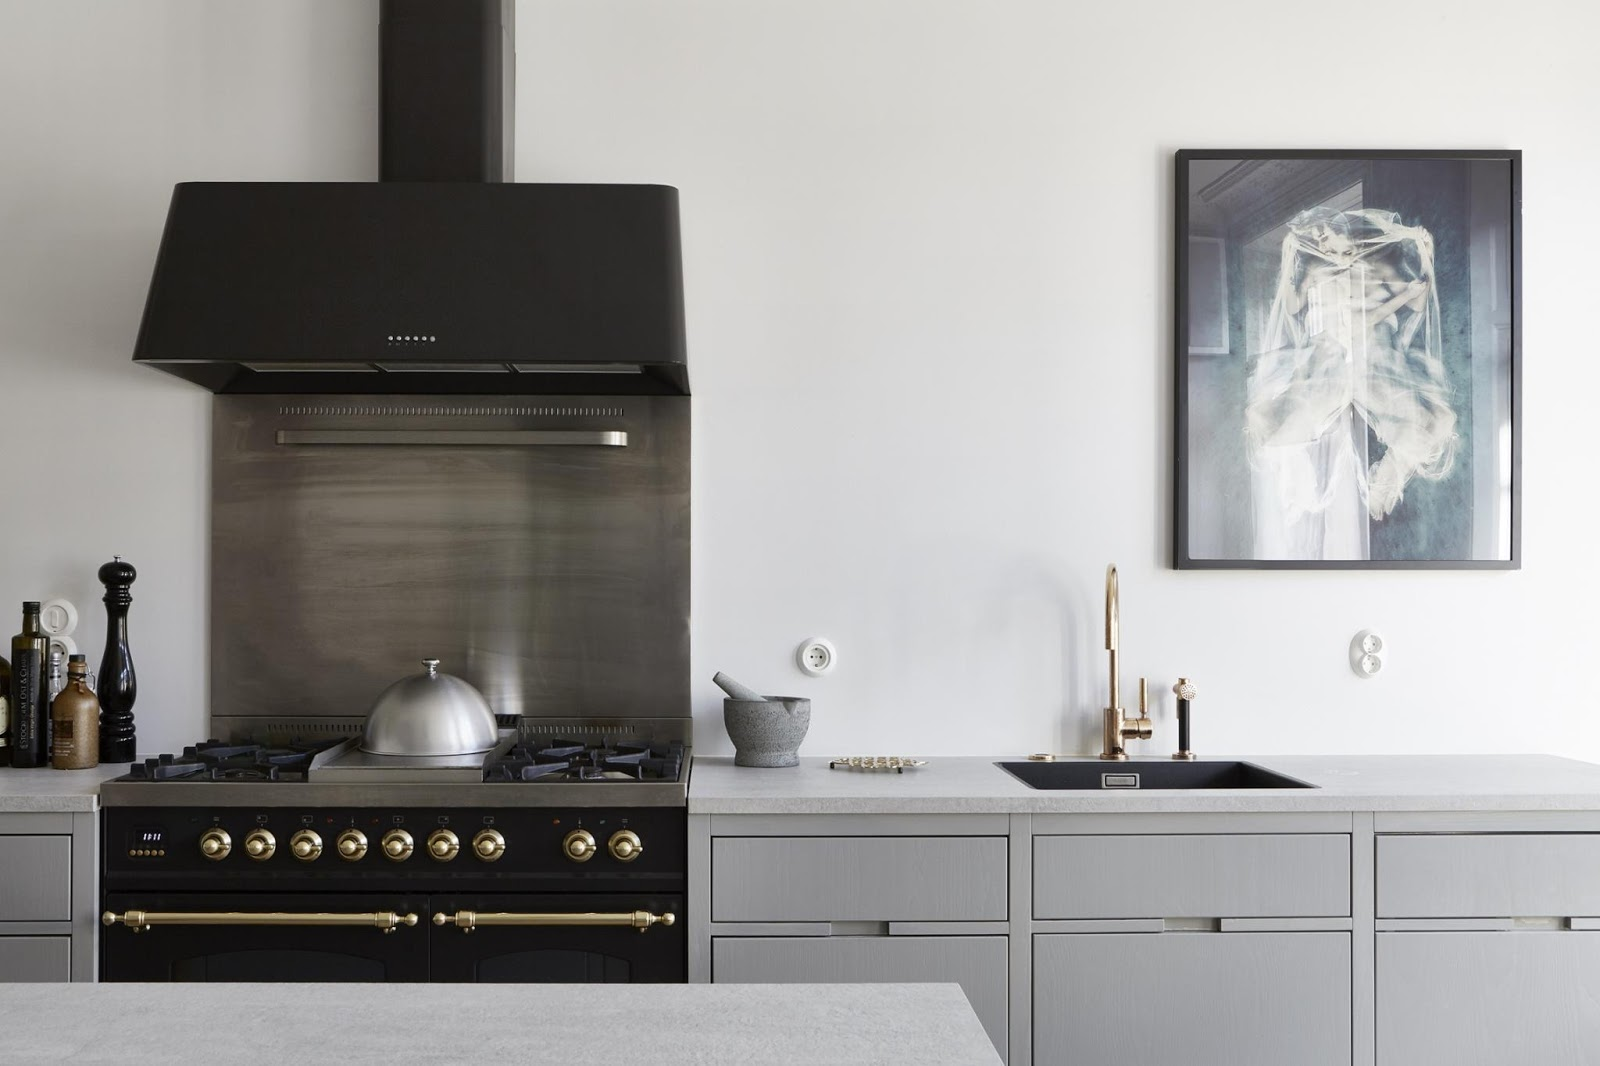 retro stove in the gray and gold kitchen, scandinavian design